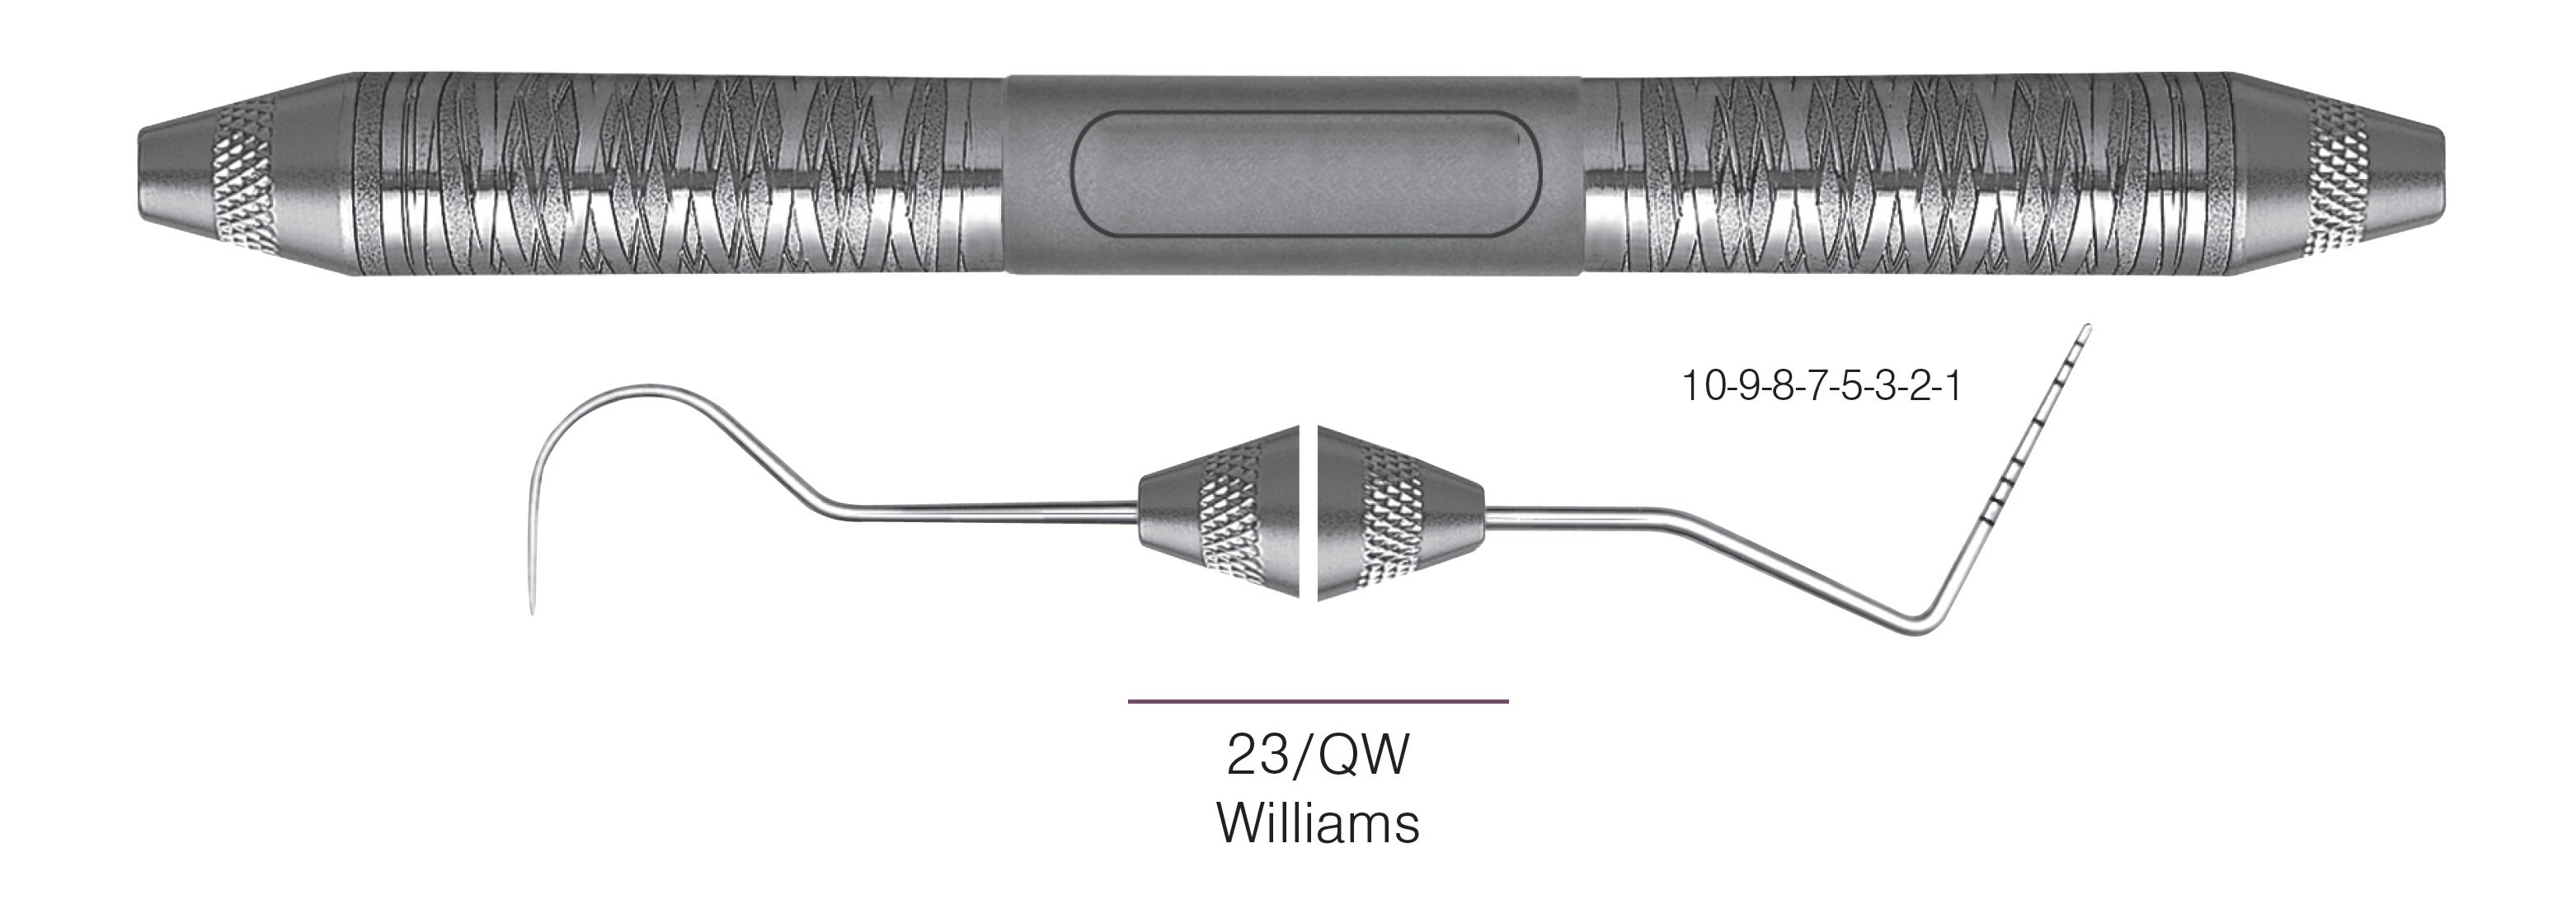 HF-XP23-QW6-6, EXPROS, Explorer #23/QW and Williams Probes, Black markings, 10-9-8-7-5-3-2-1 mm, Handle Satin Steel, Aluminum Titanium Nitride (AlTiN) Coating, Double Ended